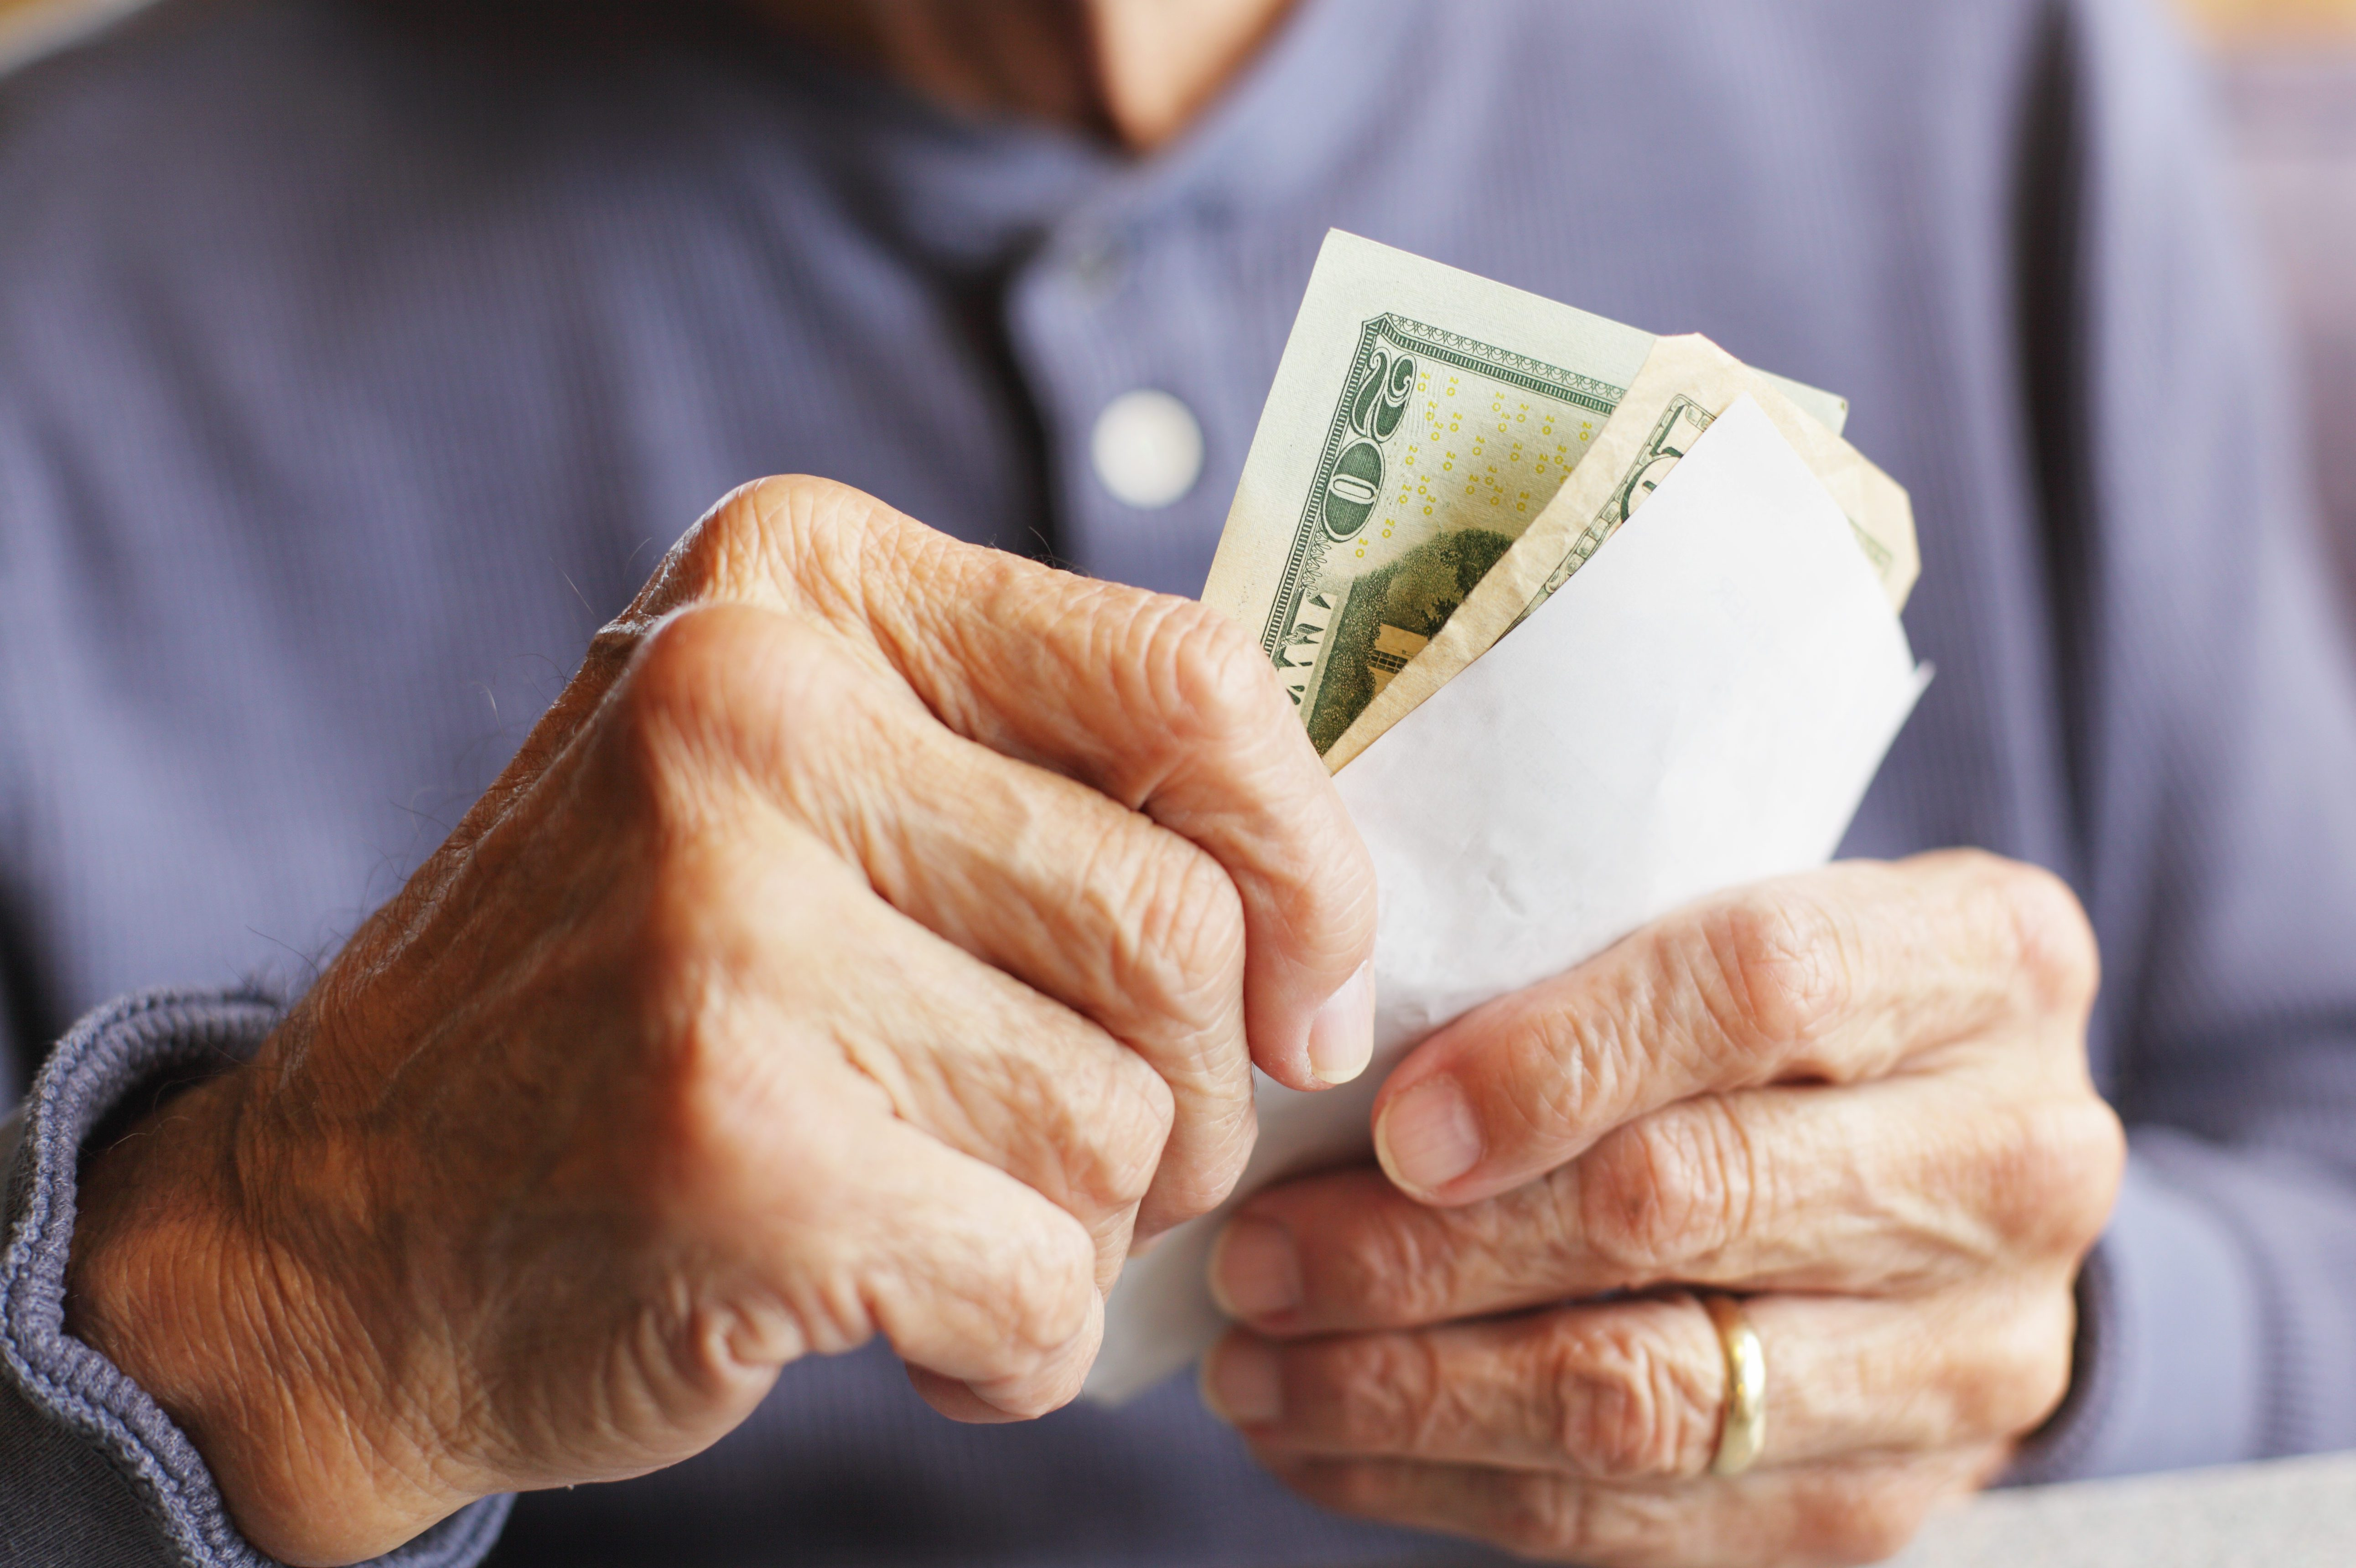 Senior Man Hands Holding Money and Breakfast Bill